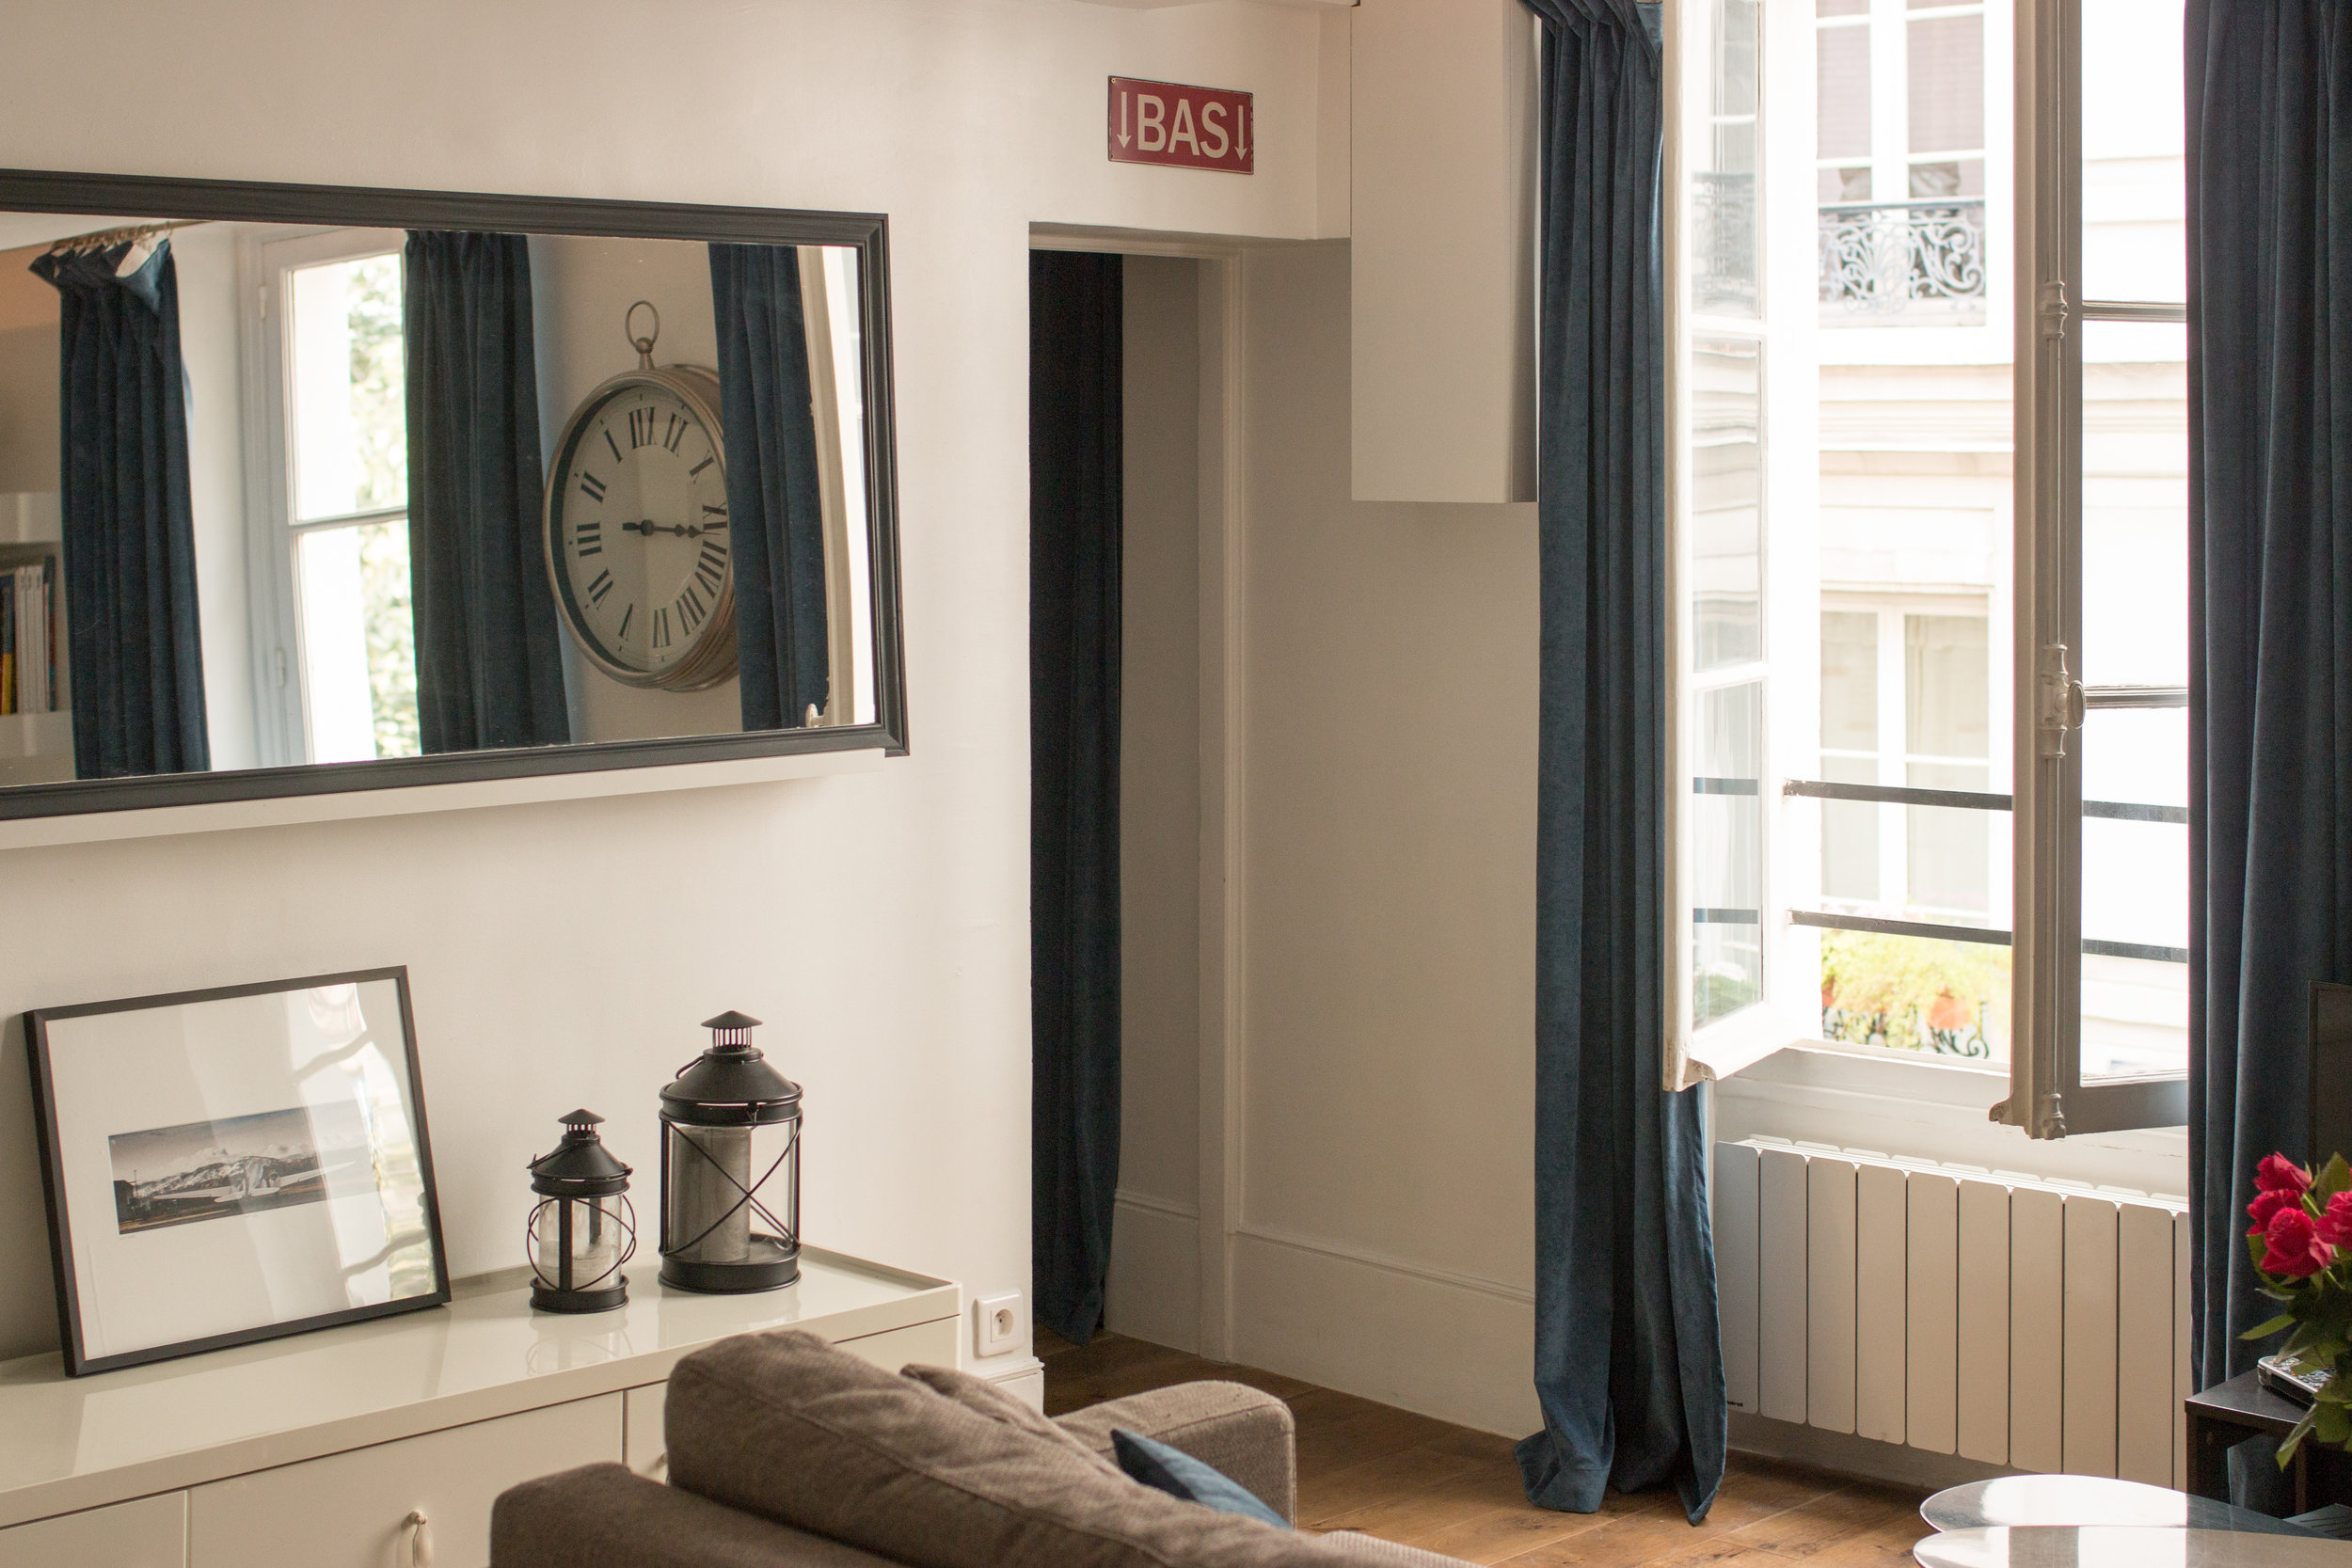 la belle address paris apartment in the marais